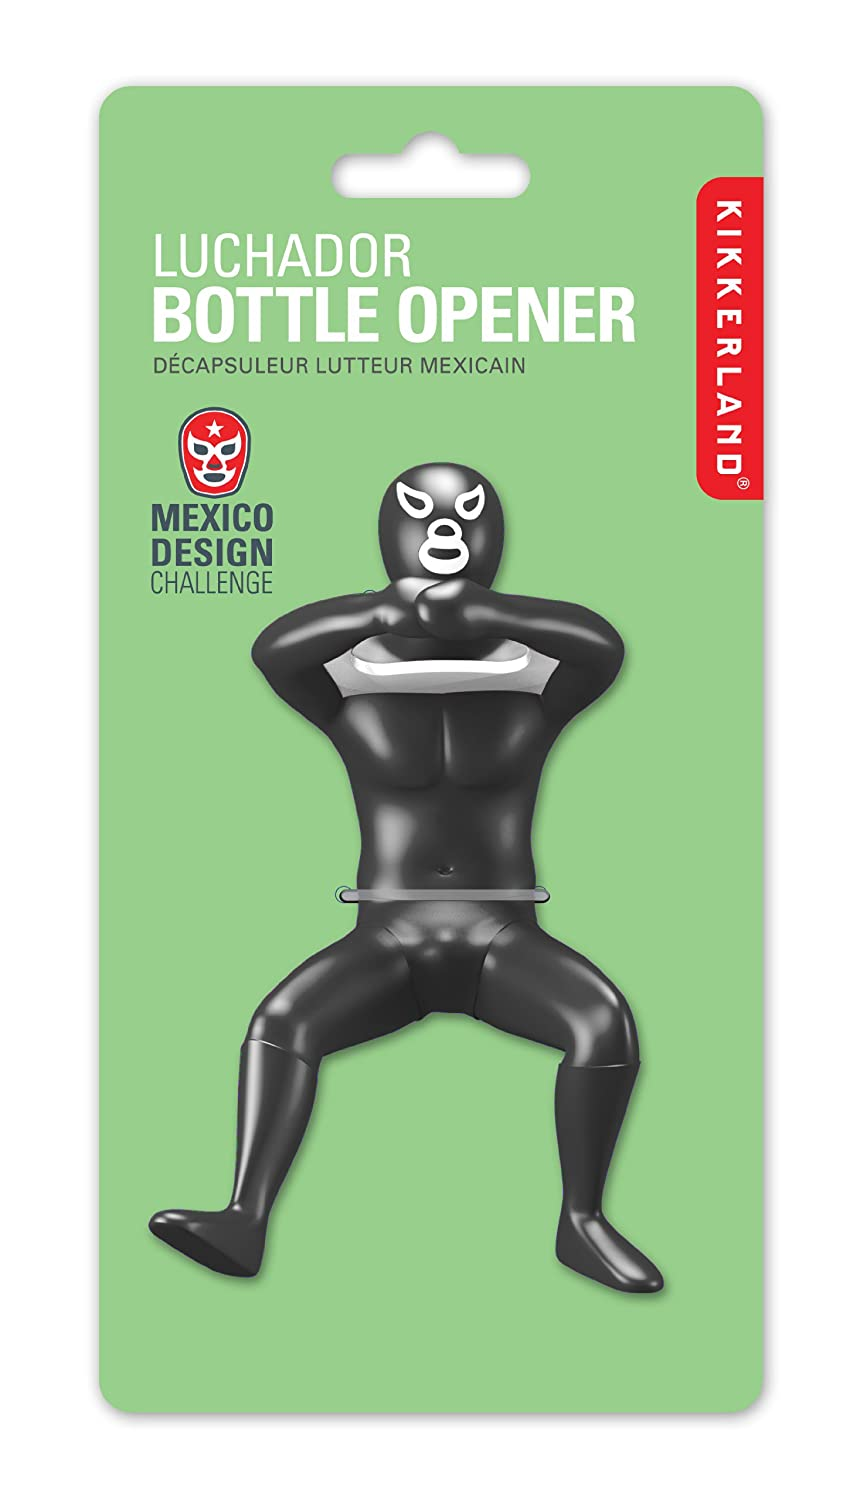 amazoncom kikkerland luchador bottle opener assorted colors and  - amazoncom kikkerland luchador bottle opener assorted colors and styleskitchen  dining